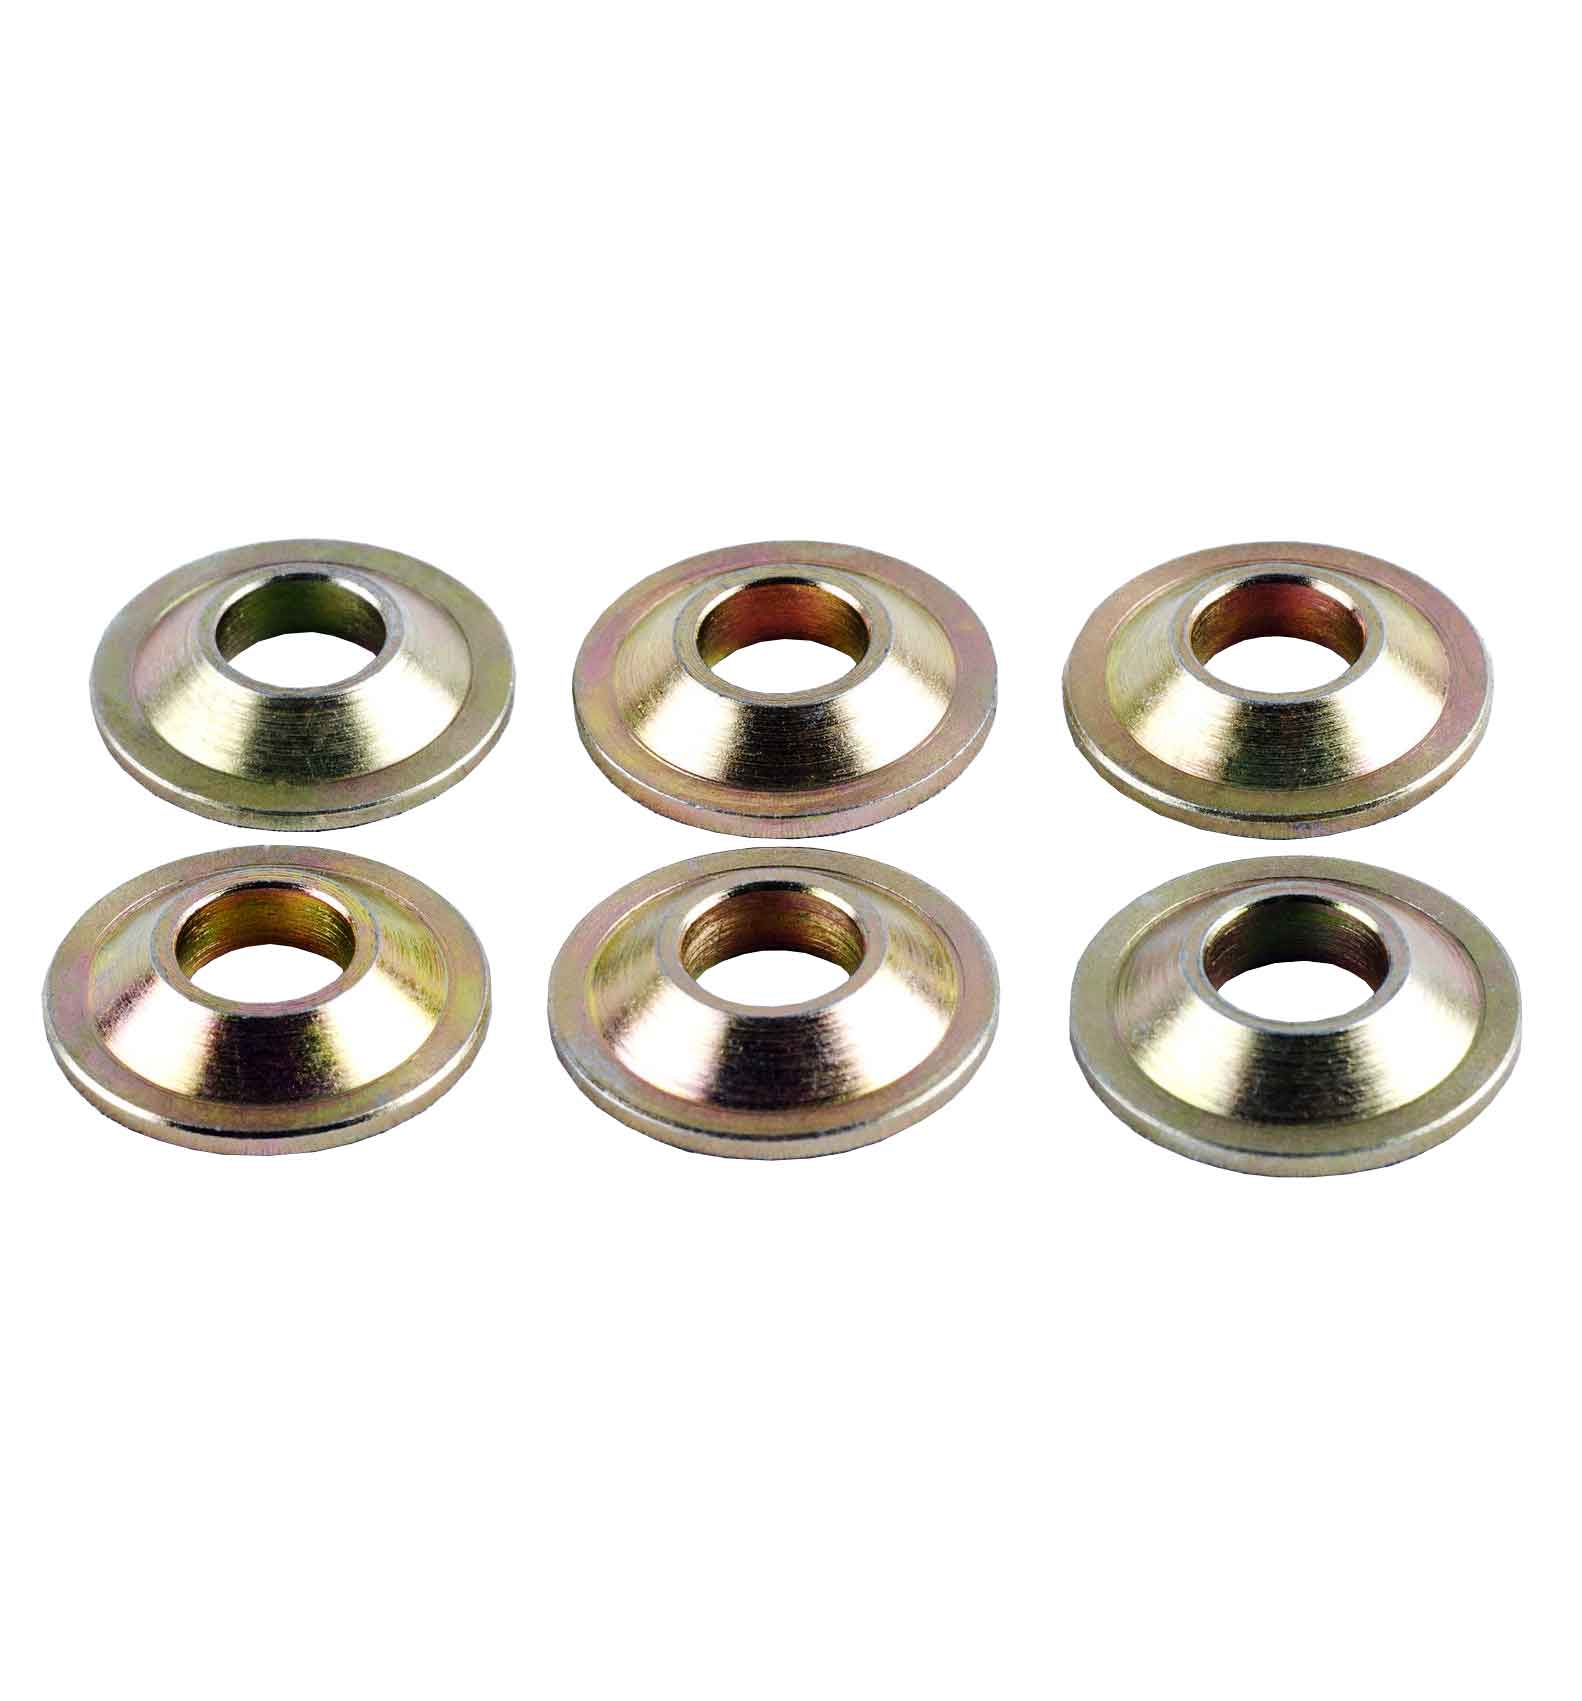 """5/16"""" Rose Joint Misalignment Spacers (Pack of 6)"""